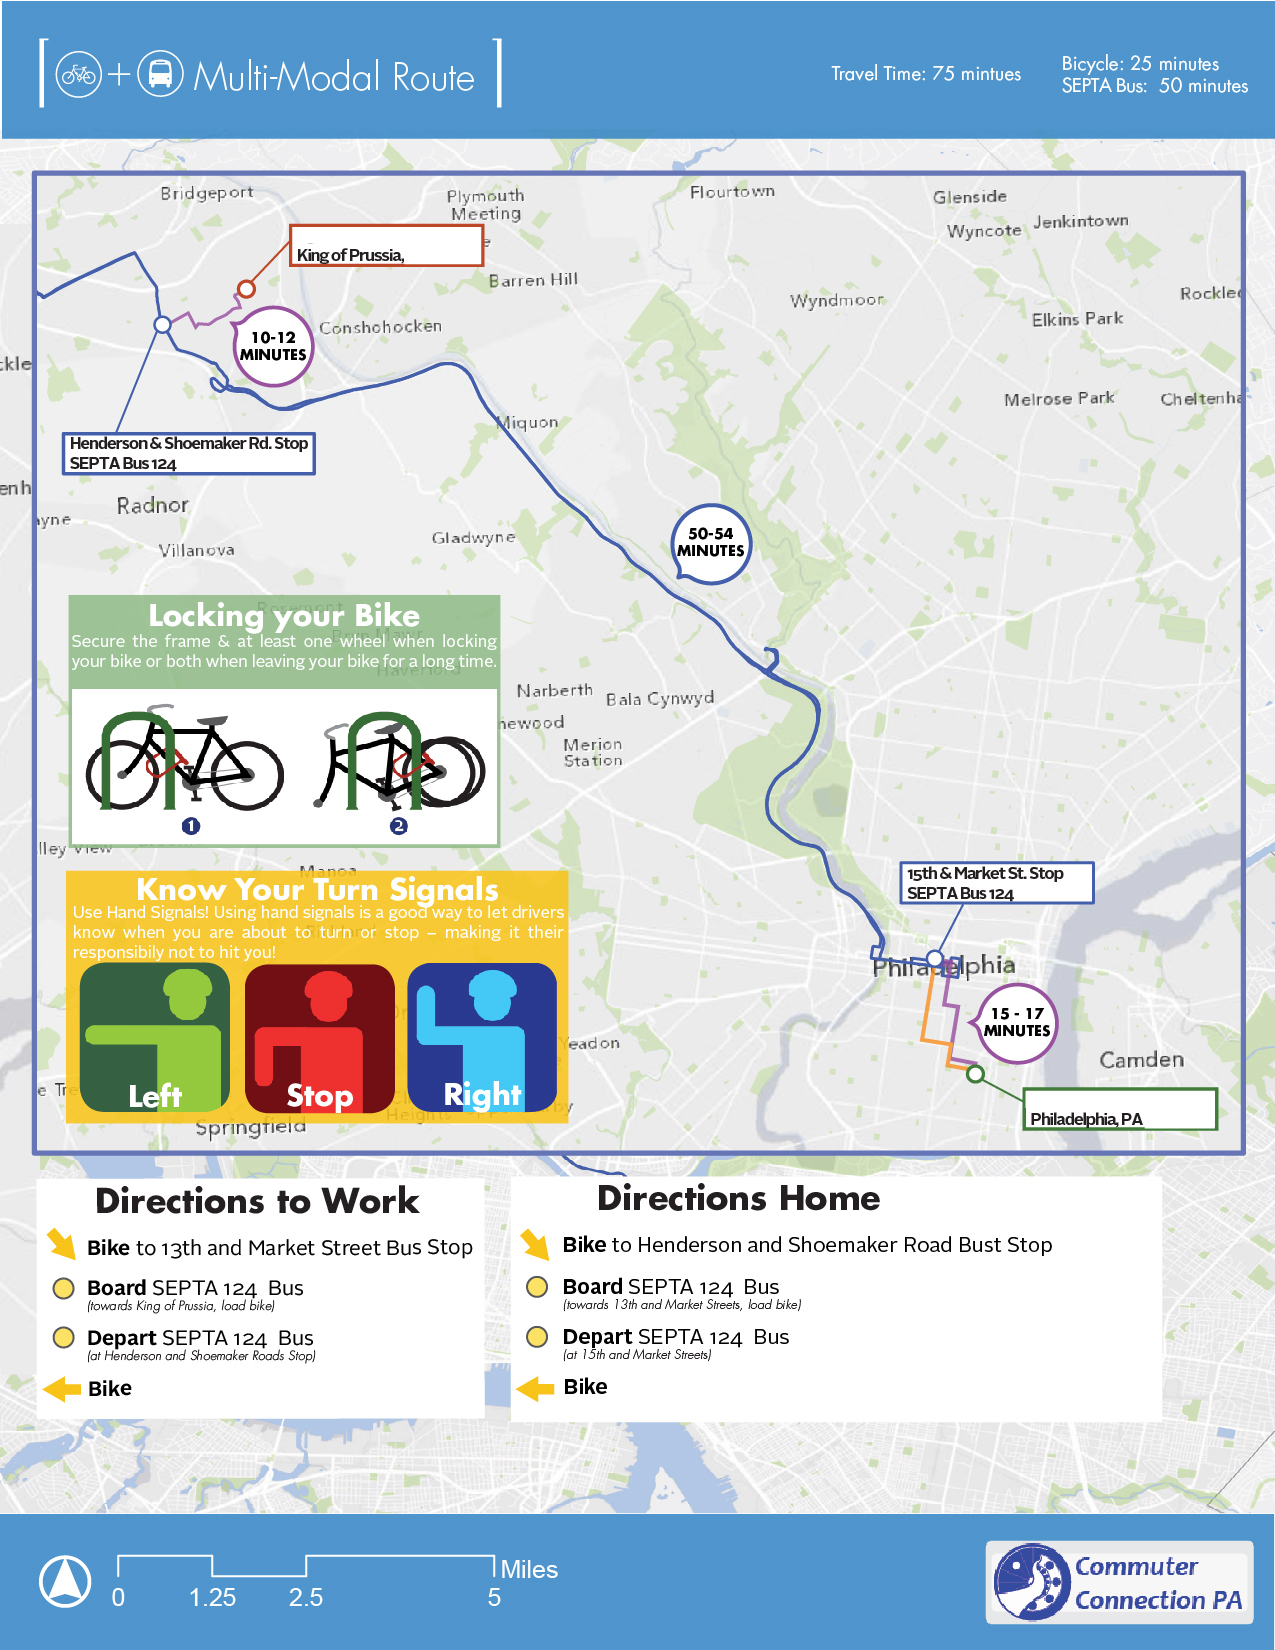 Interview with a Multi-Modal Commuter « Commuter Connection PA on tredyffrin map, hanover map, philadelphia map, dover map, pocono pines map, kings plaza map, allentown map, prussia 1853 map, new castle map, ardmore map, findlay township map, pennsylvania map, o'hara township map, bryn mawr map, upper uwchlan township map, fallsington map, prussia world map, ford city map, valley forge pa map, worcester map,